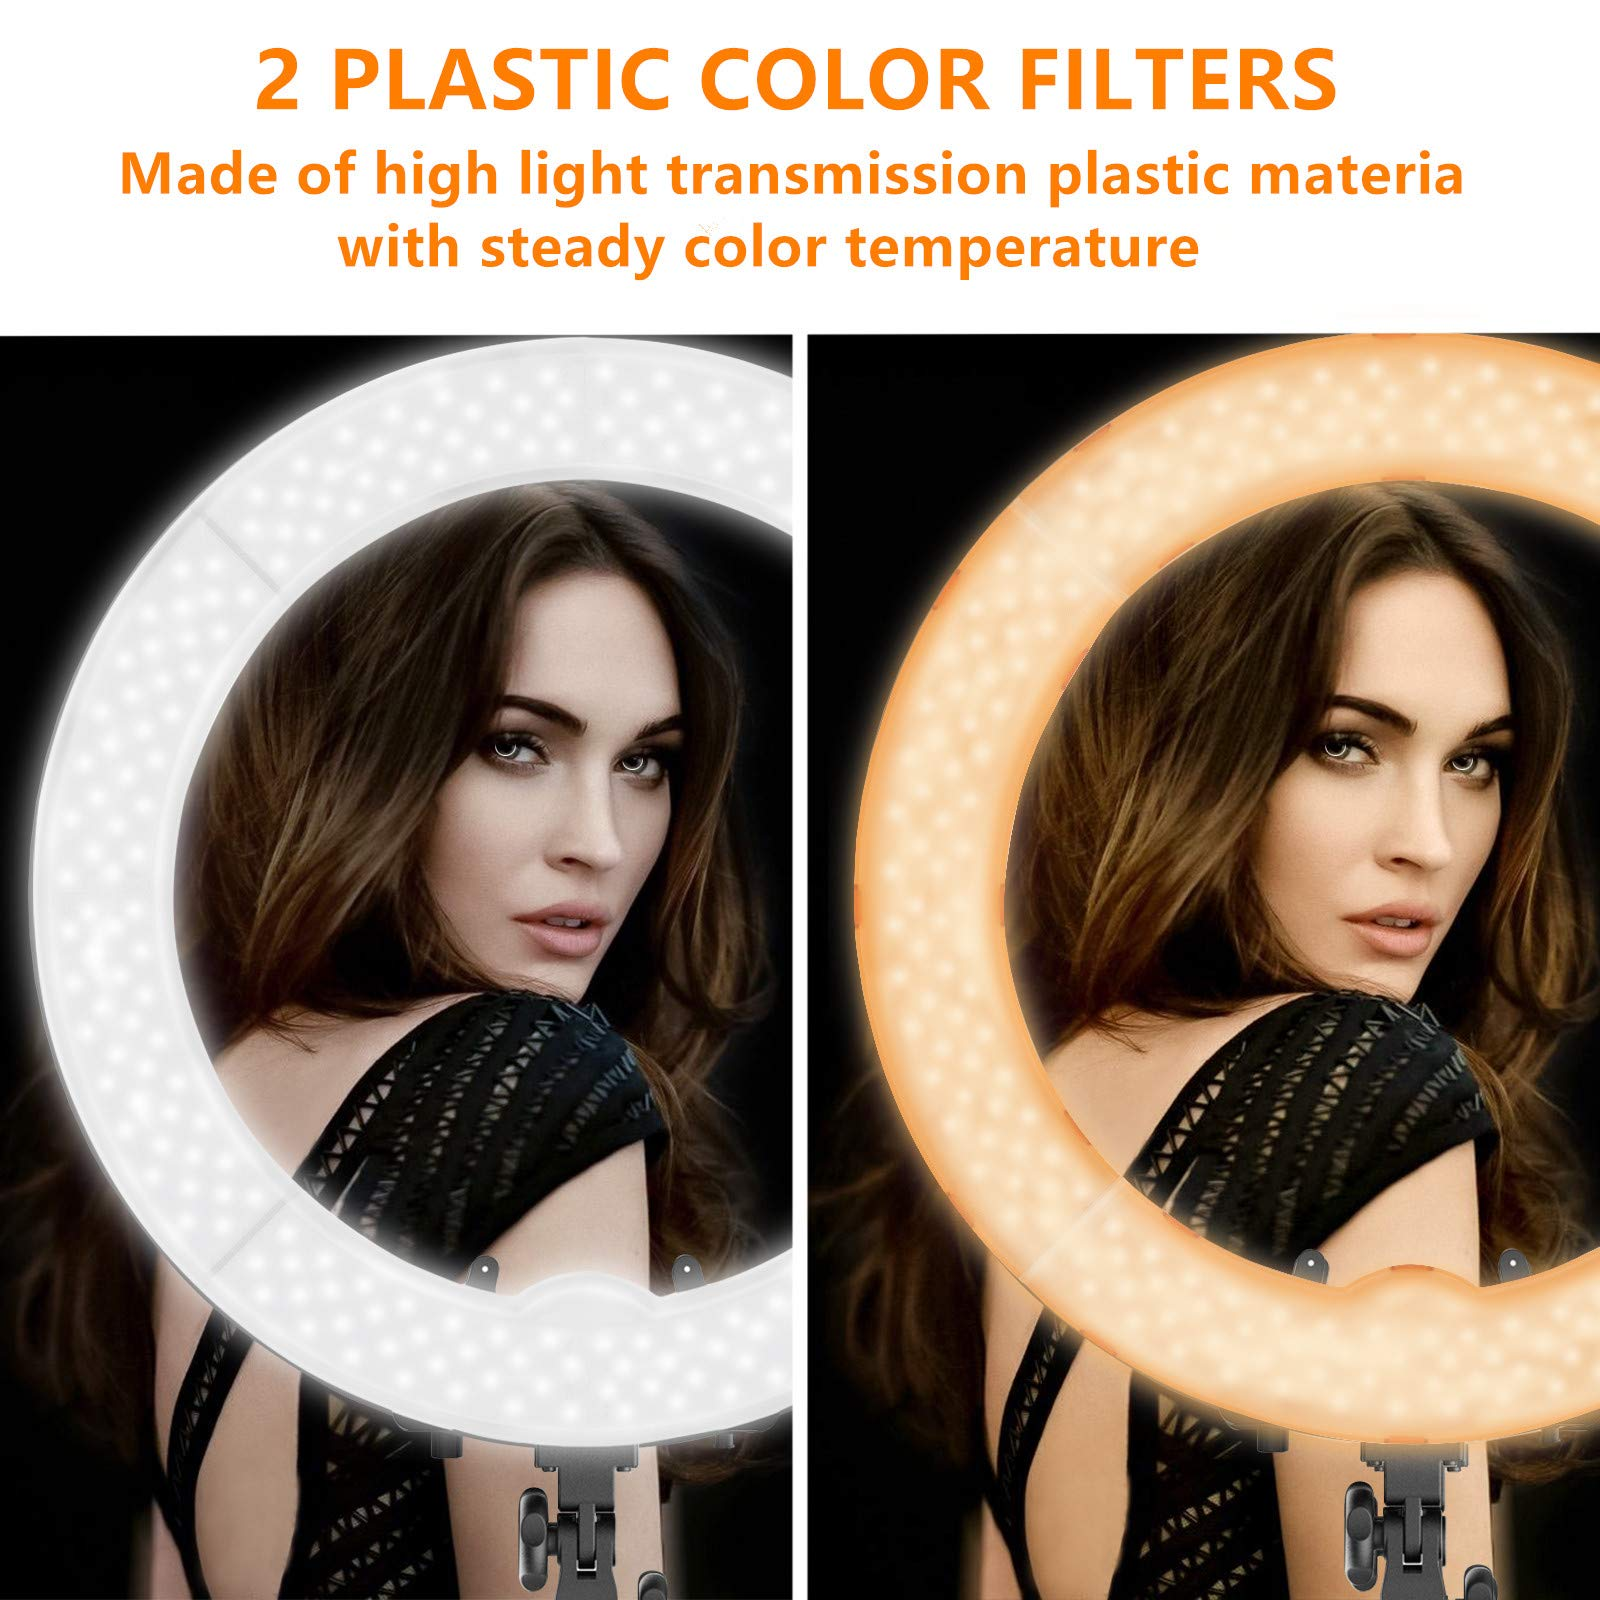 Ring Light Kit:18'' 48cm Outer 55W 5500K Dimmable LED Ring Light, Light Stand, Carrying Bag for Camera,Smartphone,YouTube,Self-Portrait Shooting by IVISII (Image #3)